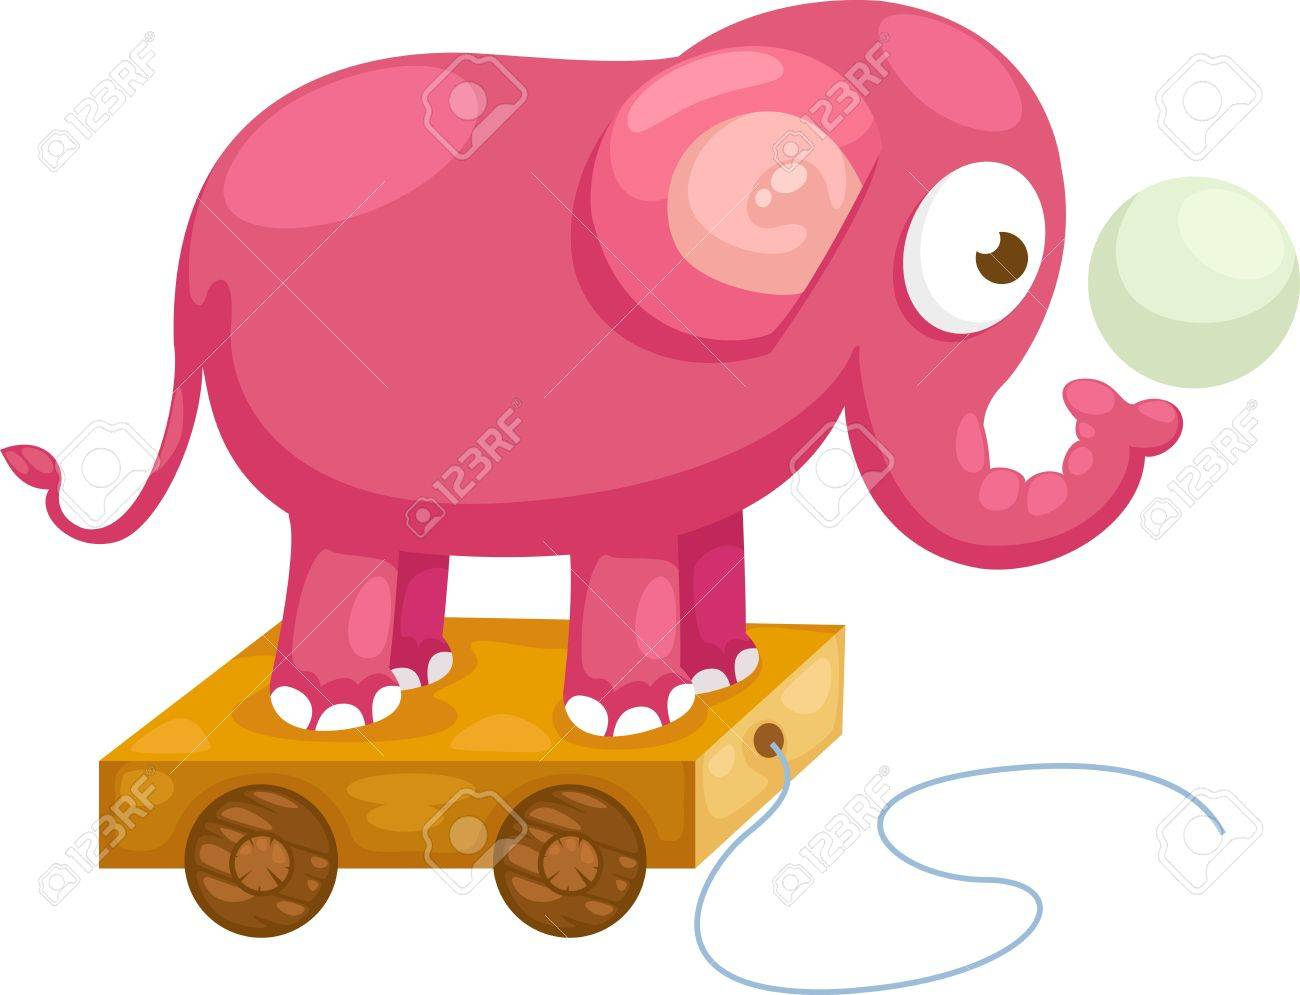 6,987 Baby Elephant Stock Vector Illustration And Royalty Free ...